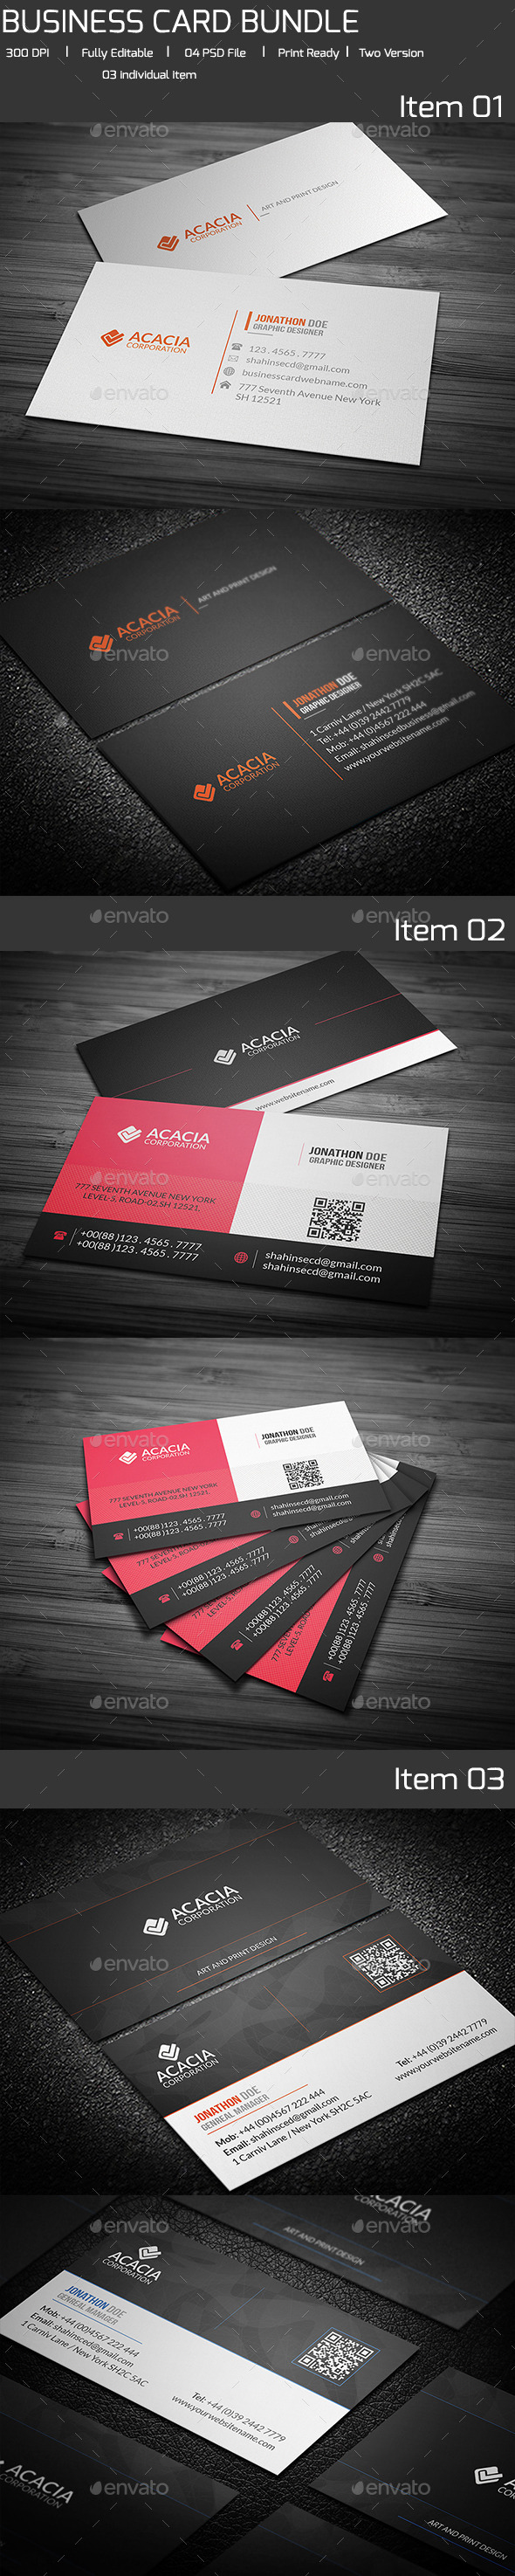 Bundle-03 Business Card (3 in 1) - Corporate Business Cards